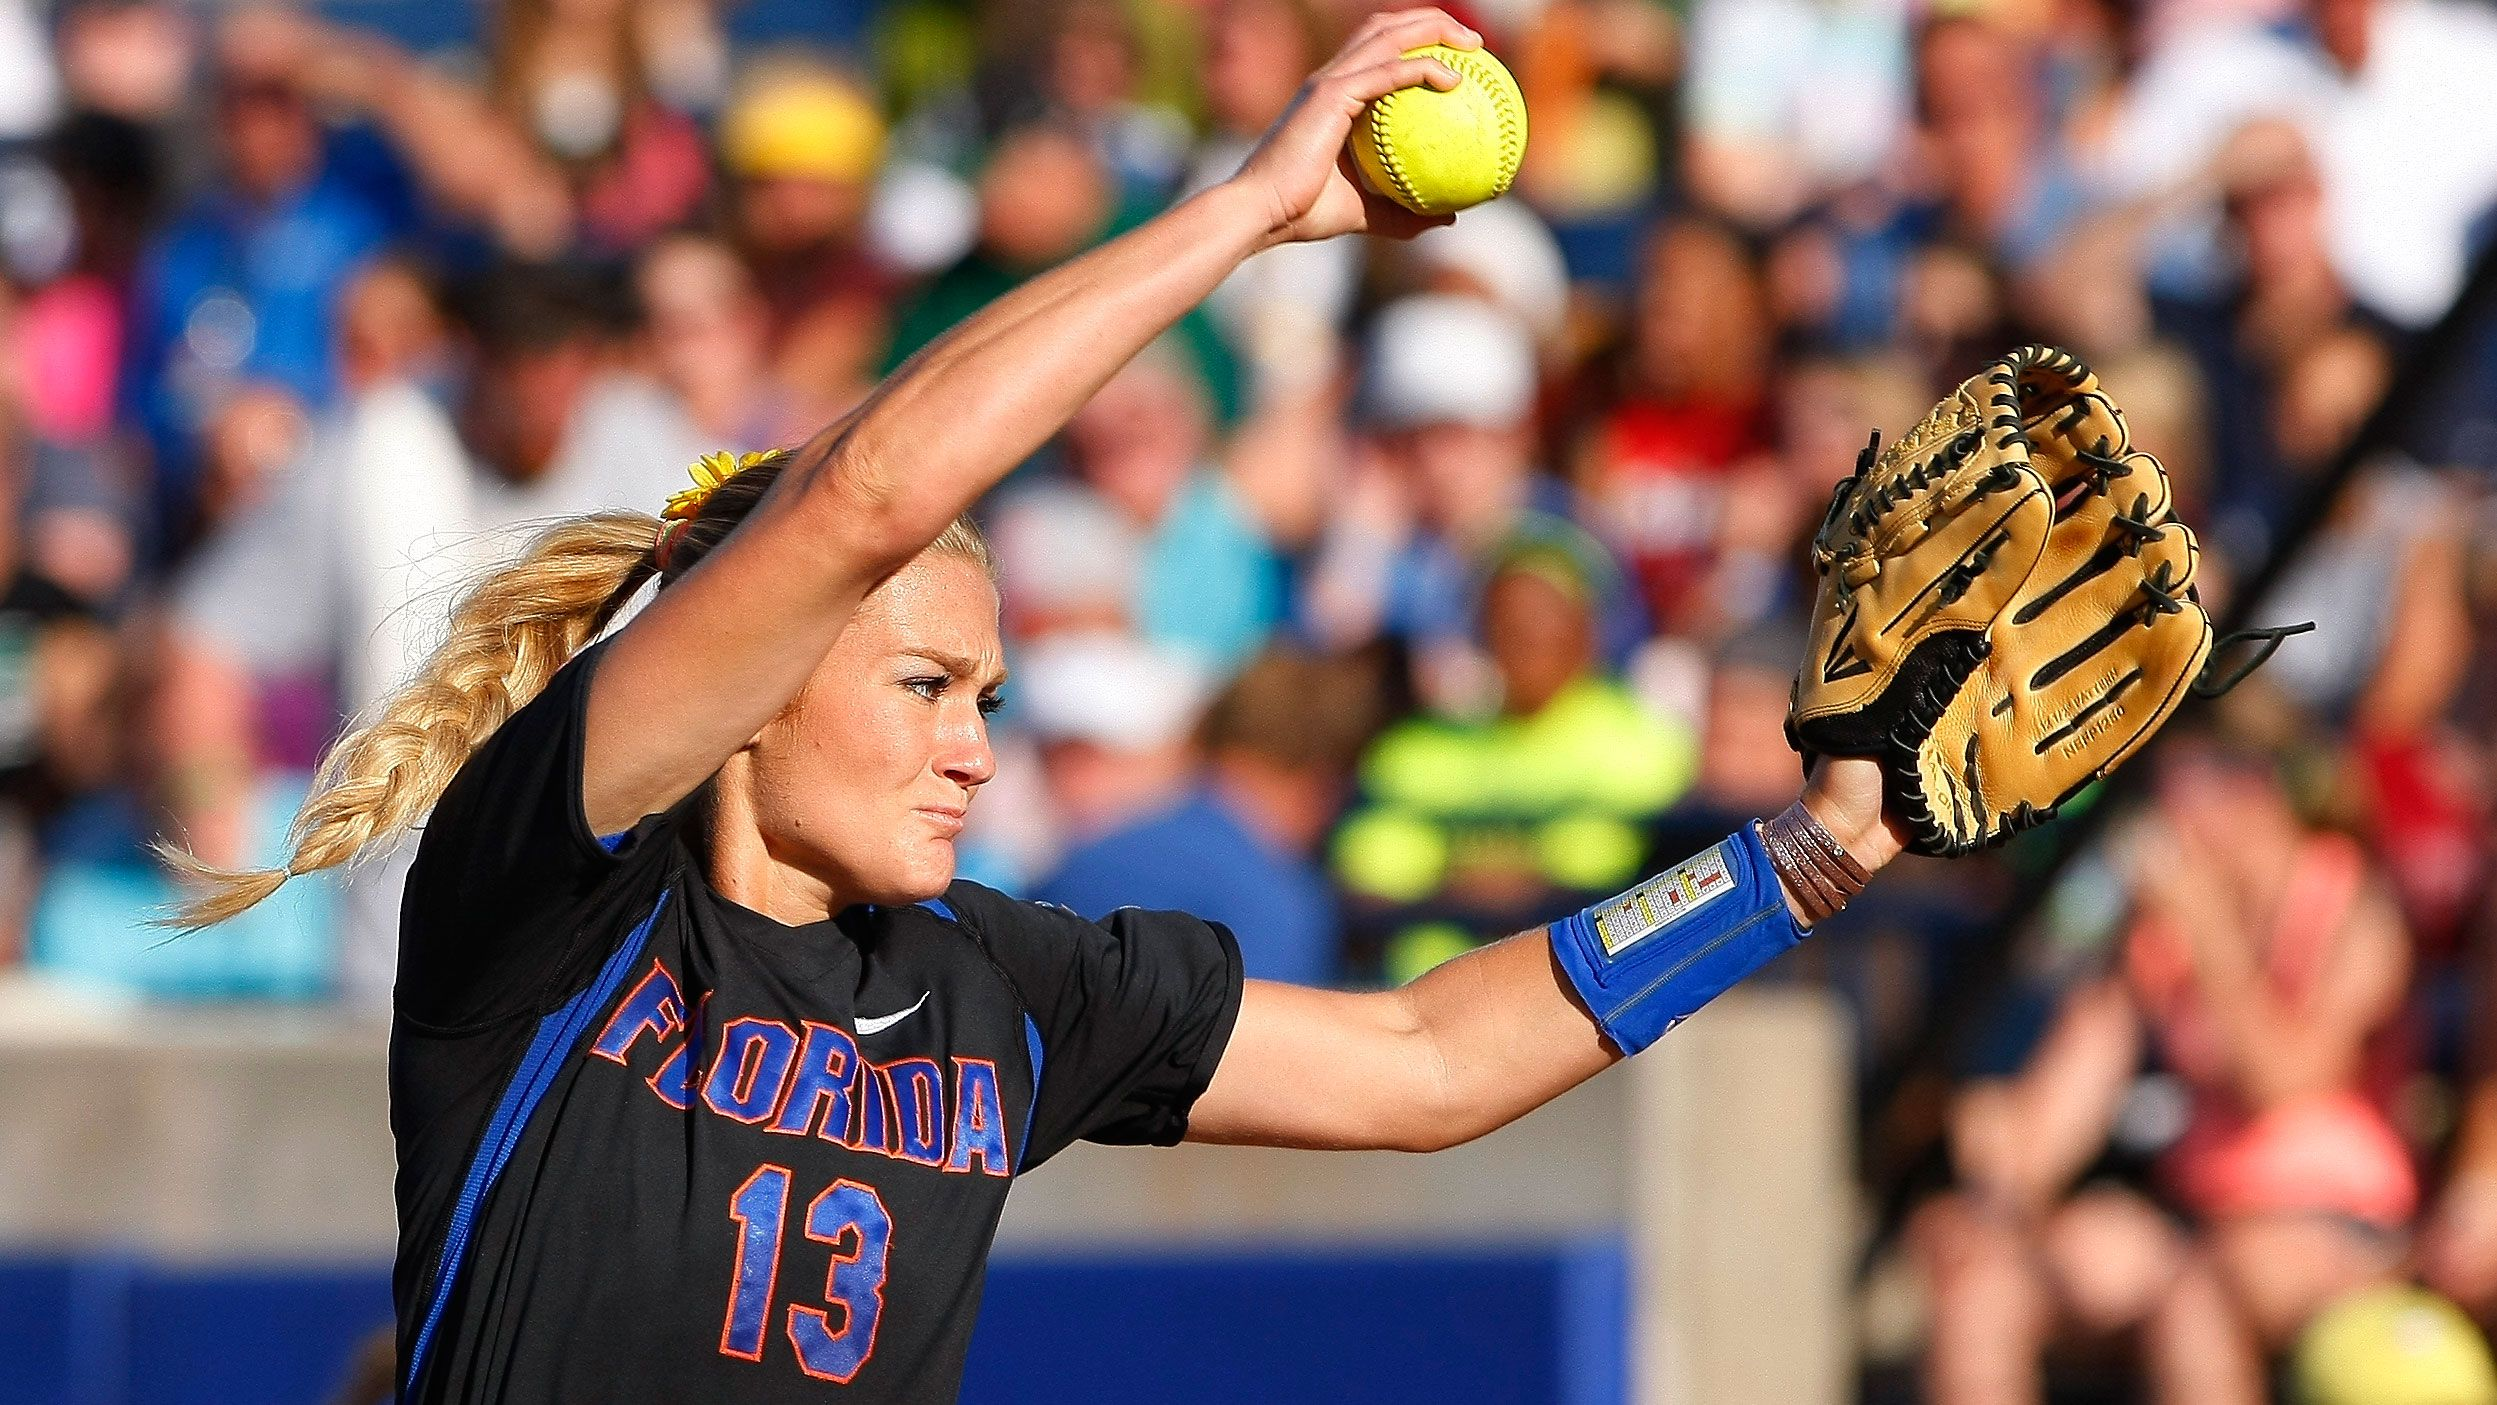 14 SEC softball players named to 2014 NFCA All-American Teams